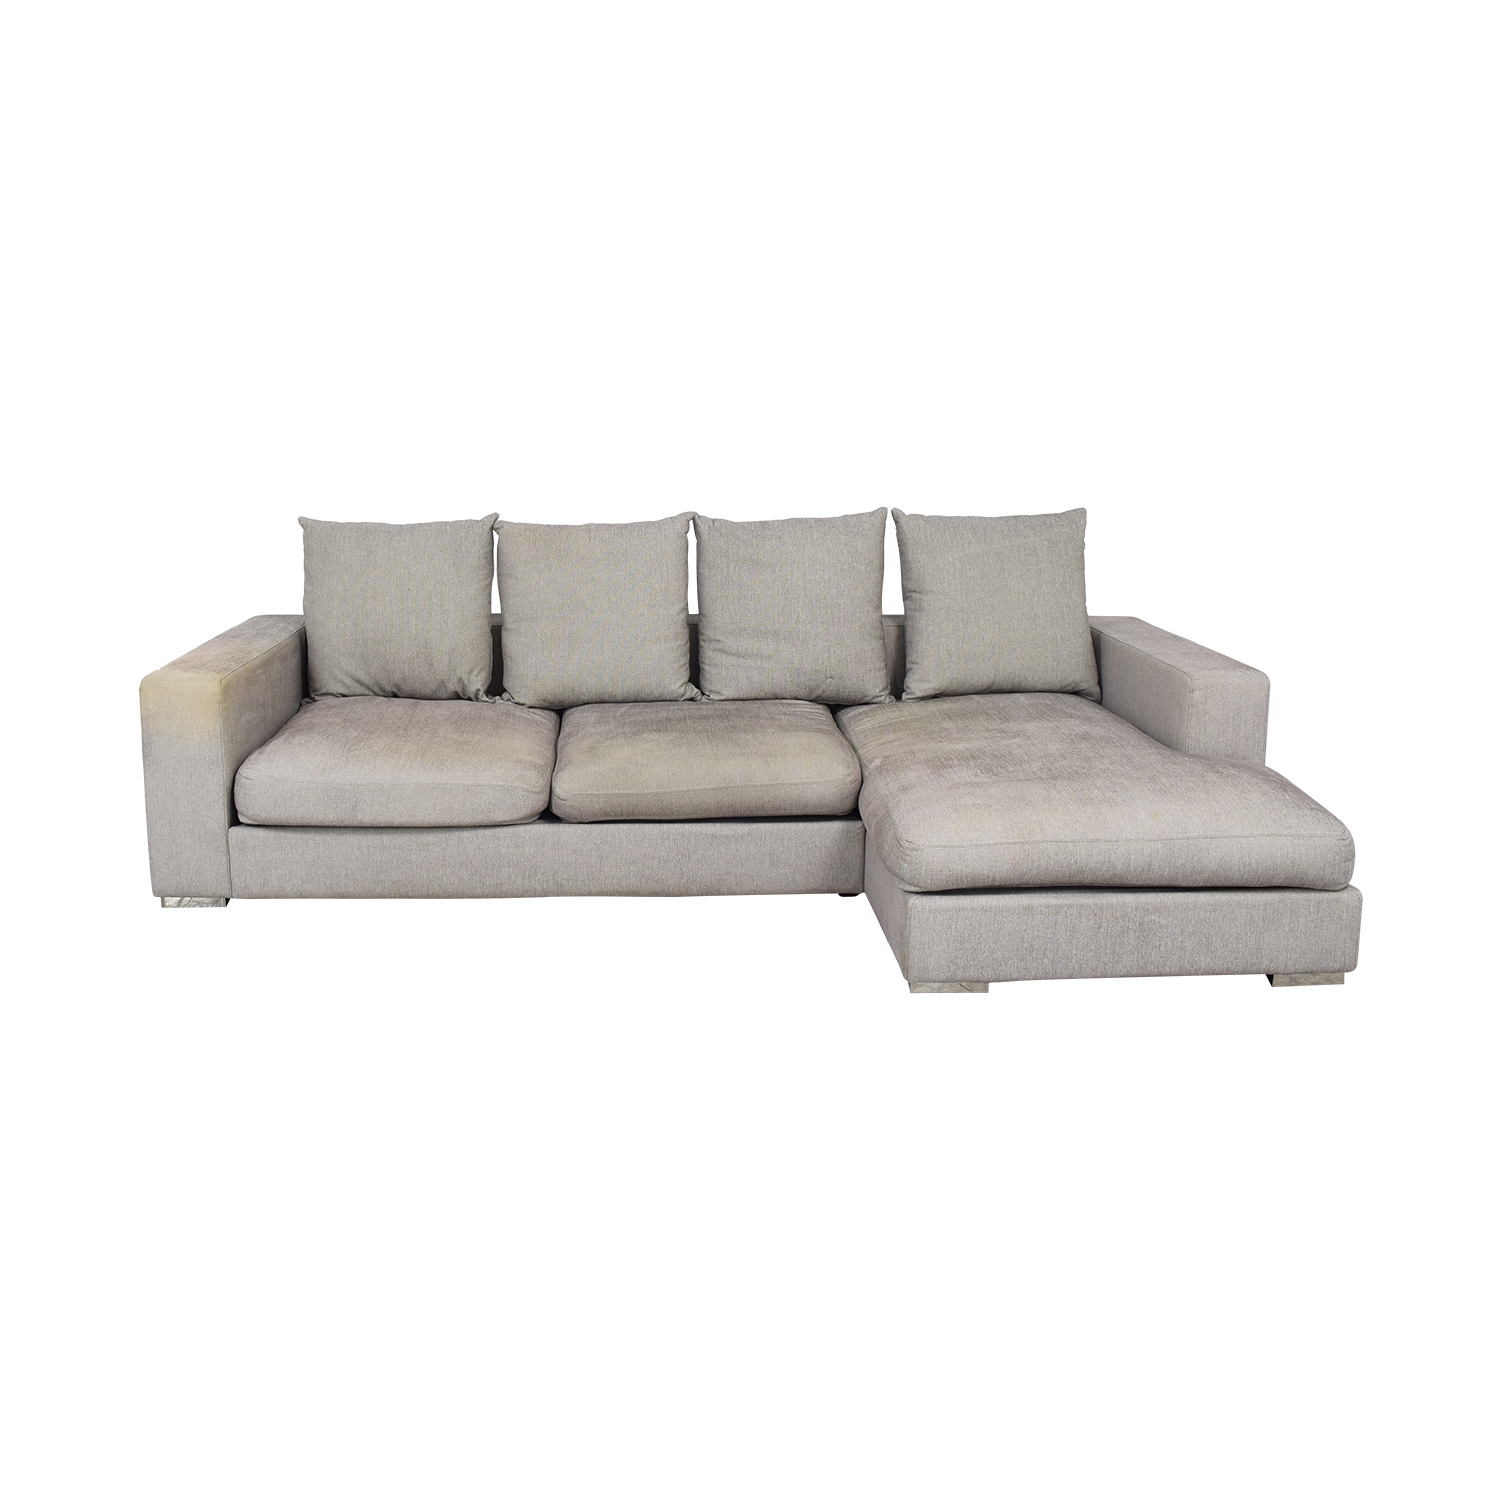 BoConcept BoConcept Cenova Sofa with Resting Unit